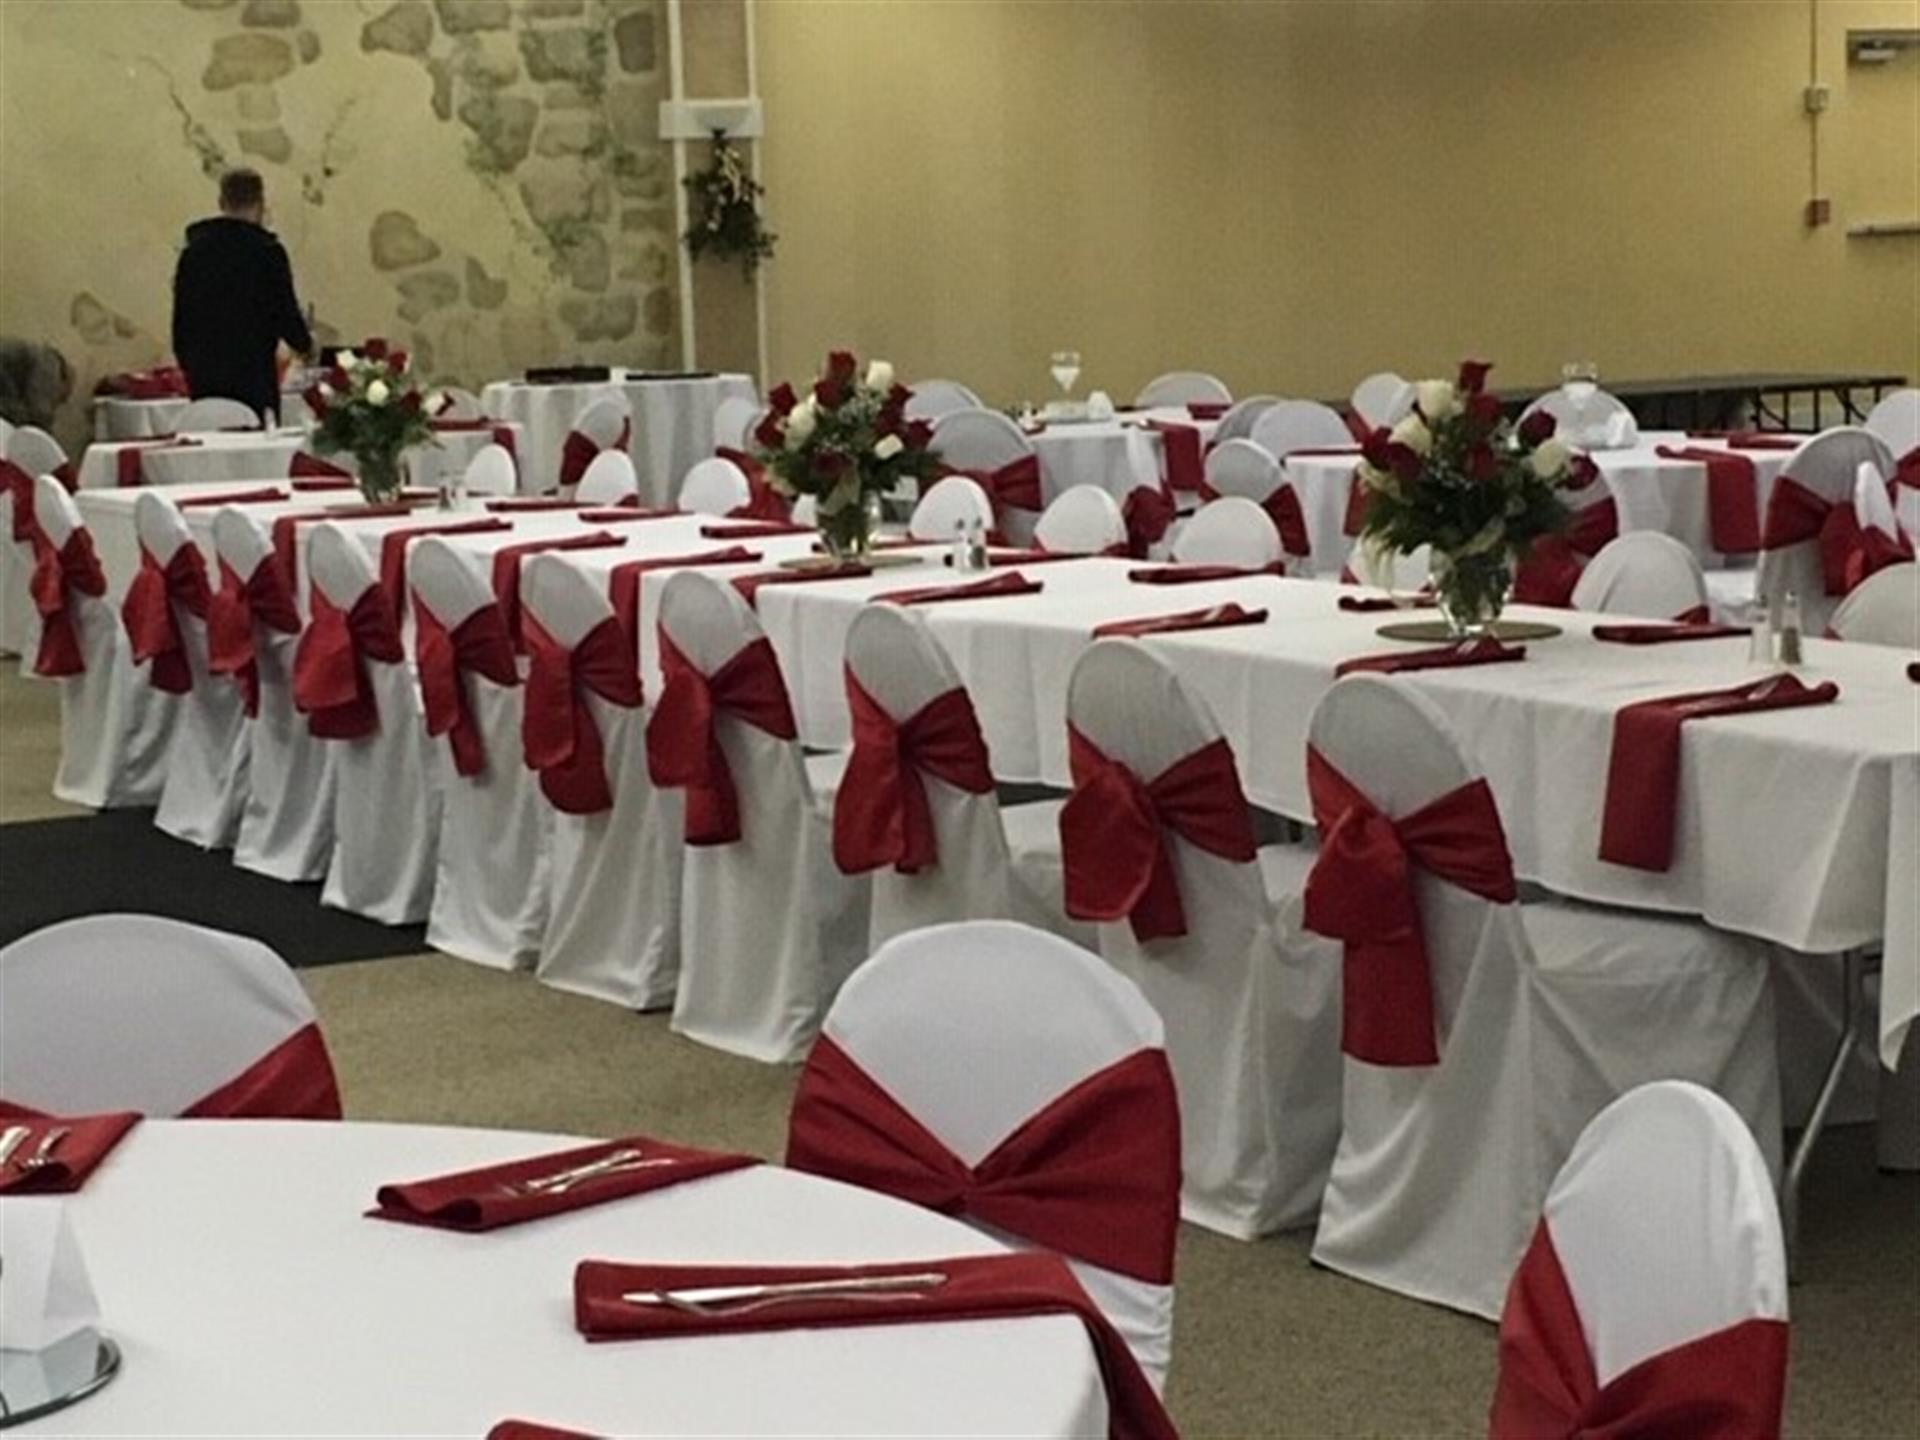 Rectangle table covered in a tablecloth with flower centerpiece  inside Mesenberg Hall